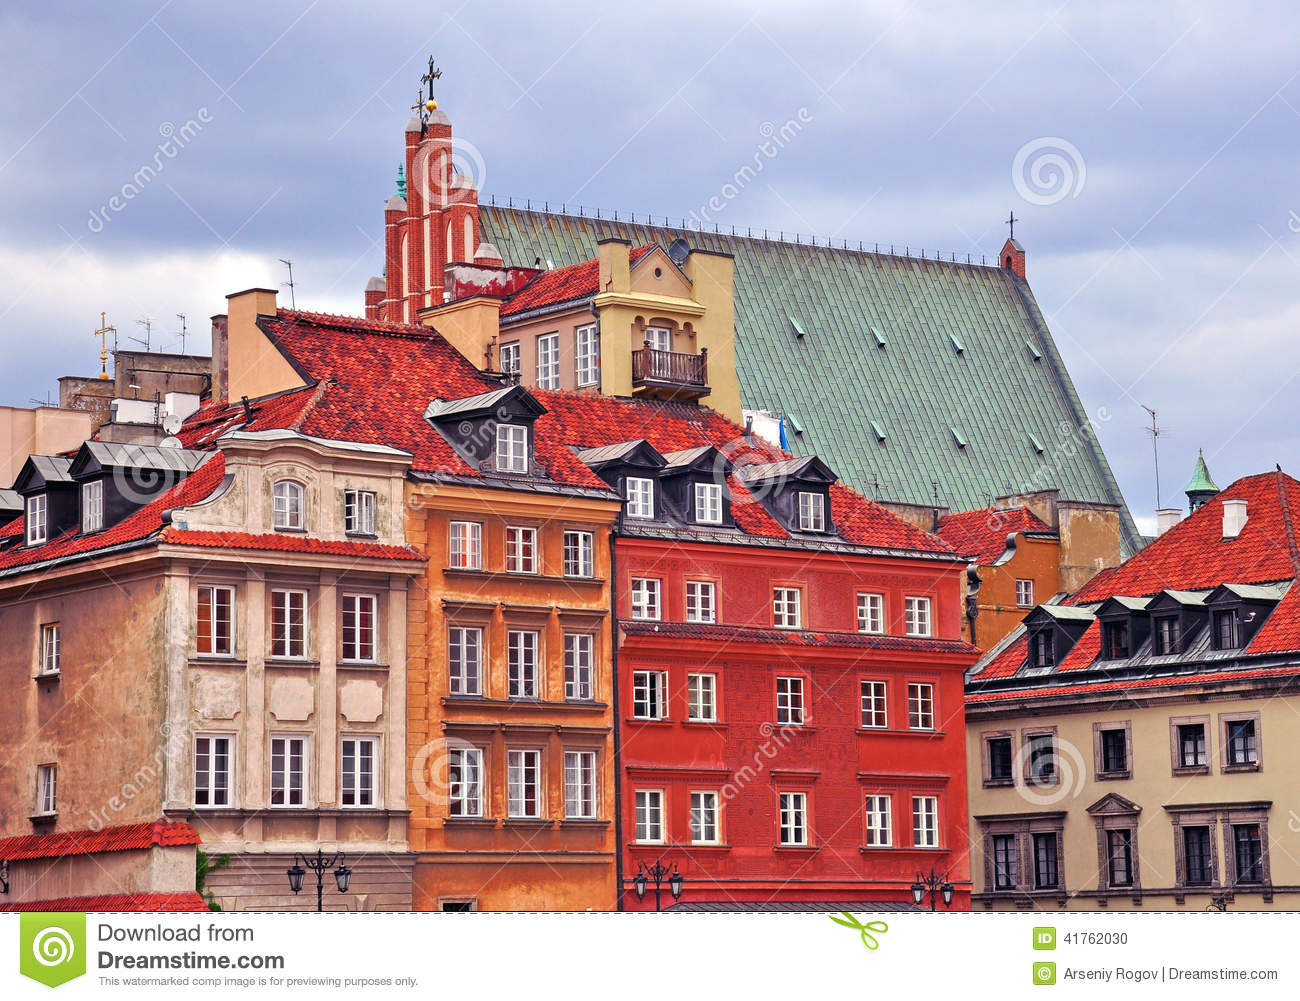 Houses of Warsaw